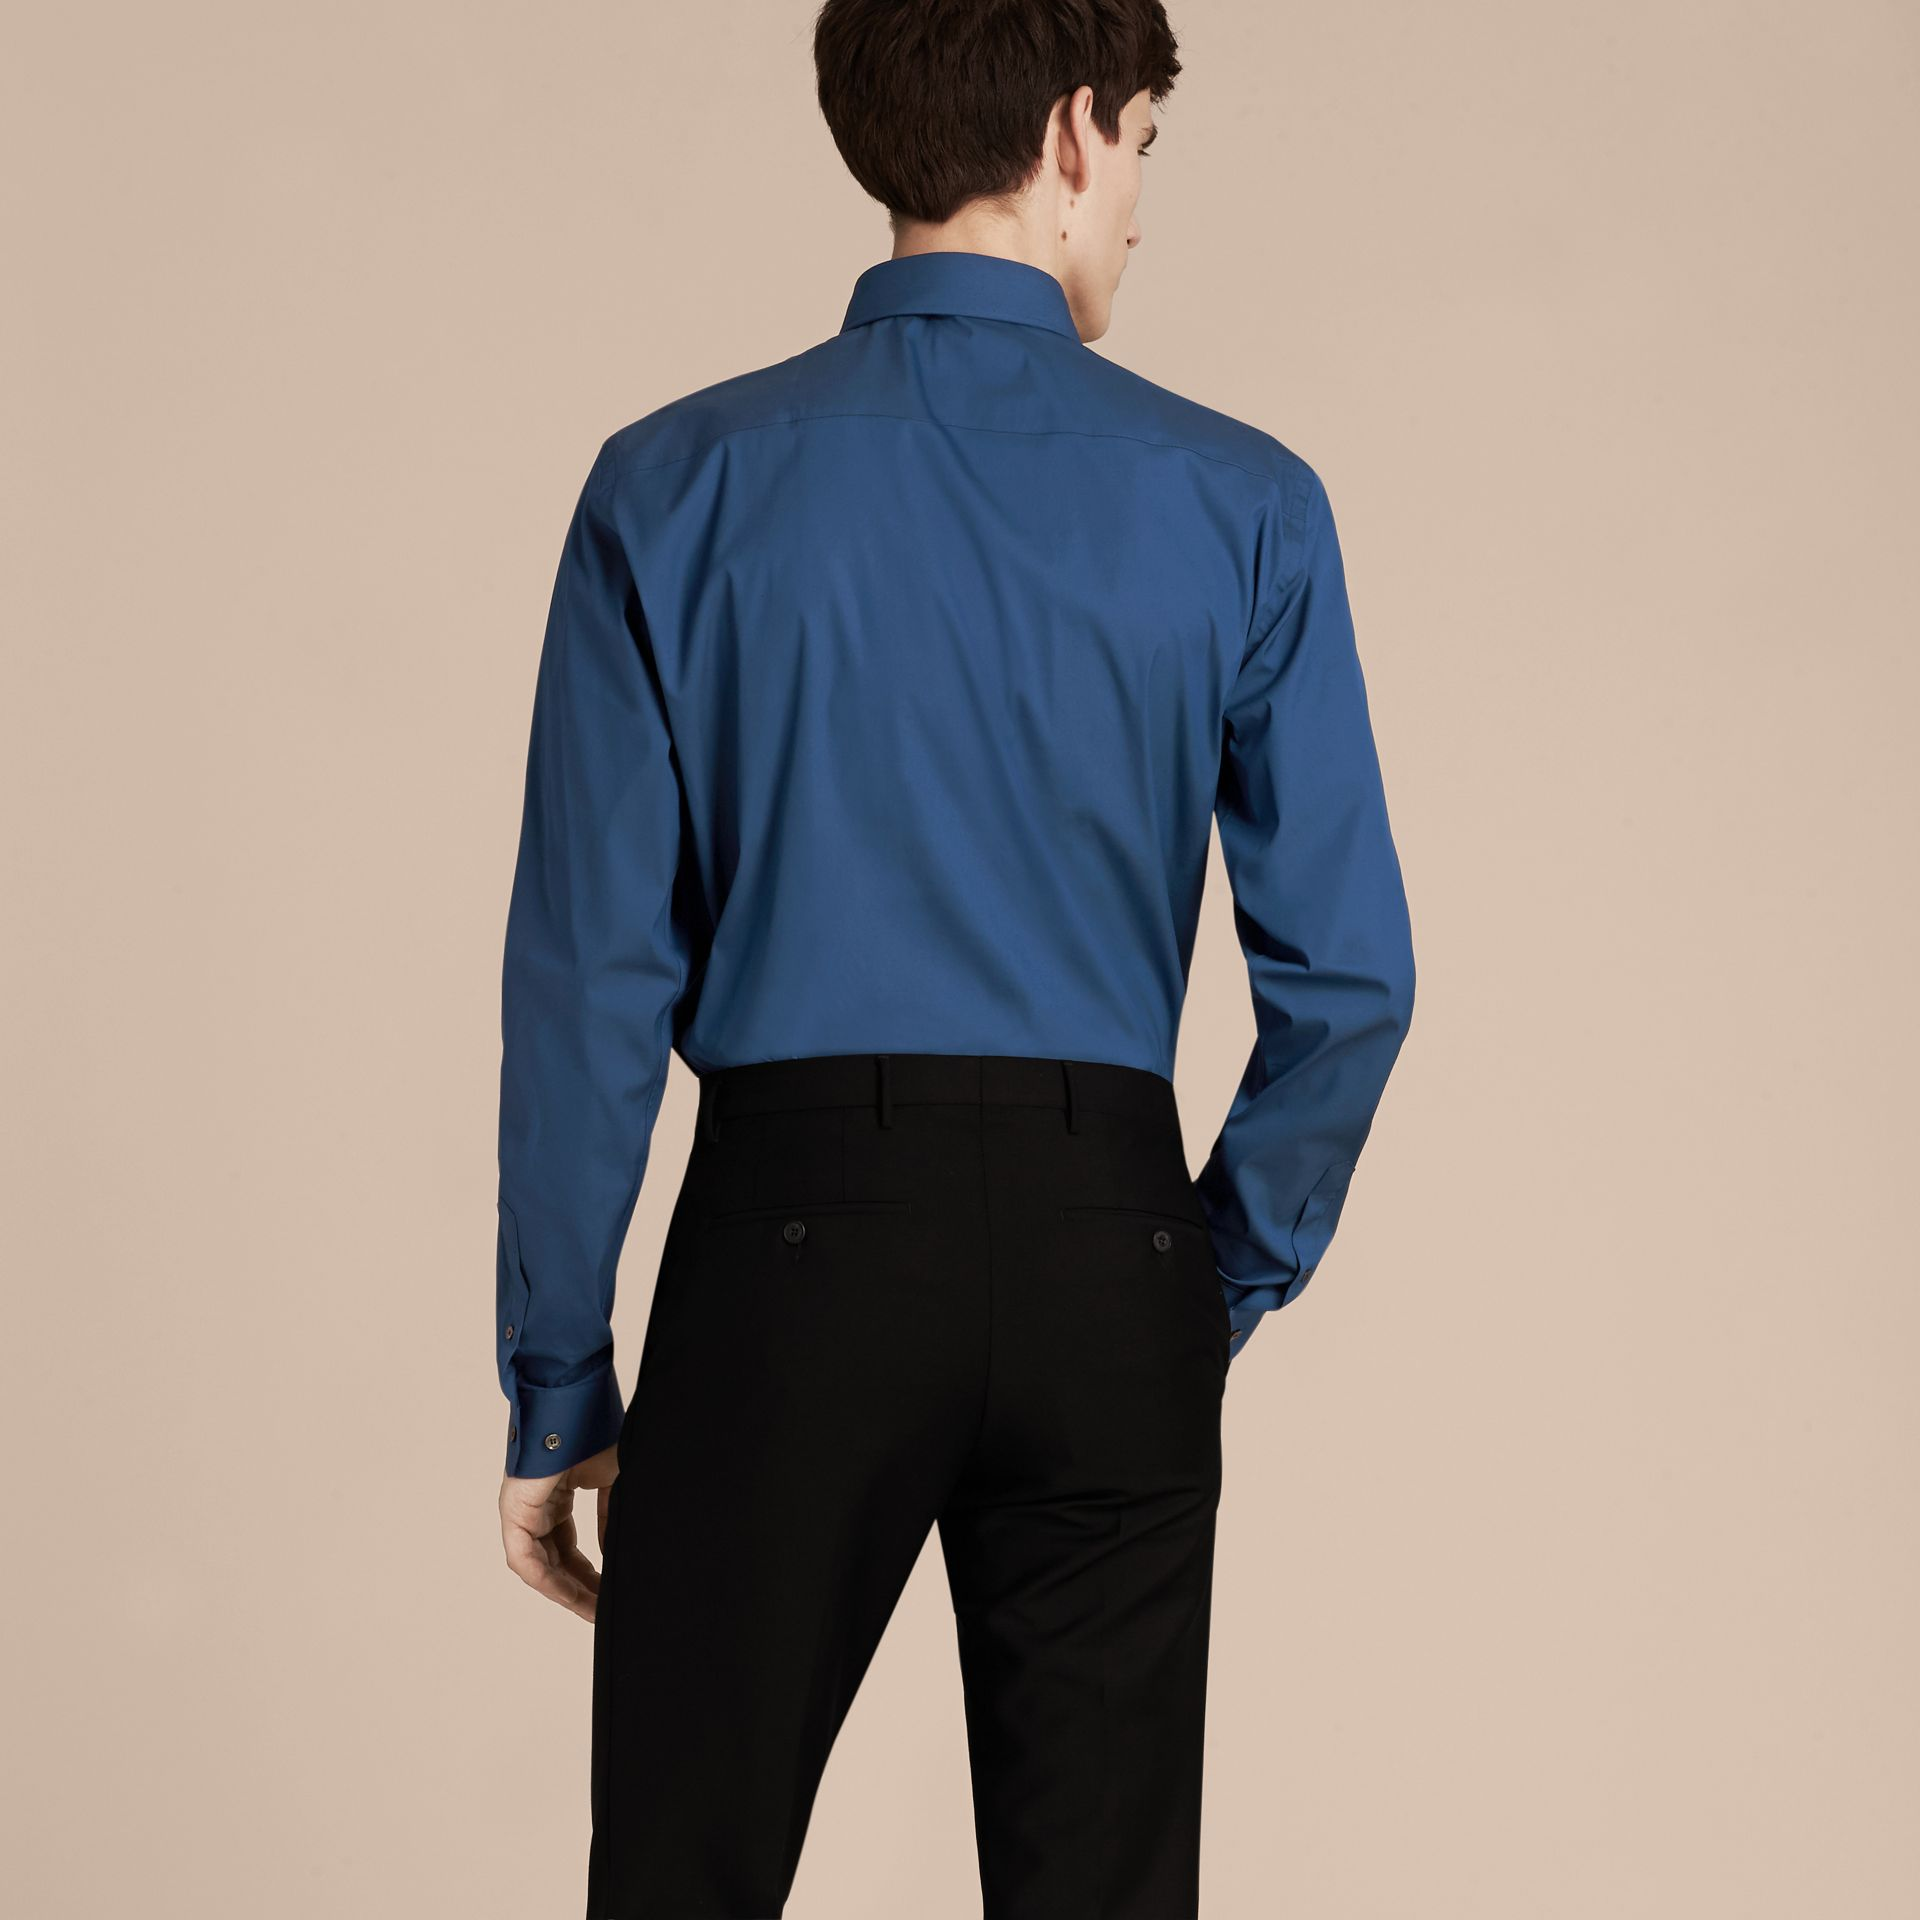 Indigo Slim Fit Stretch Cotton Blend Shirt Indigo - gallery image 3